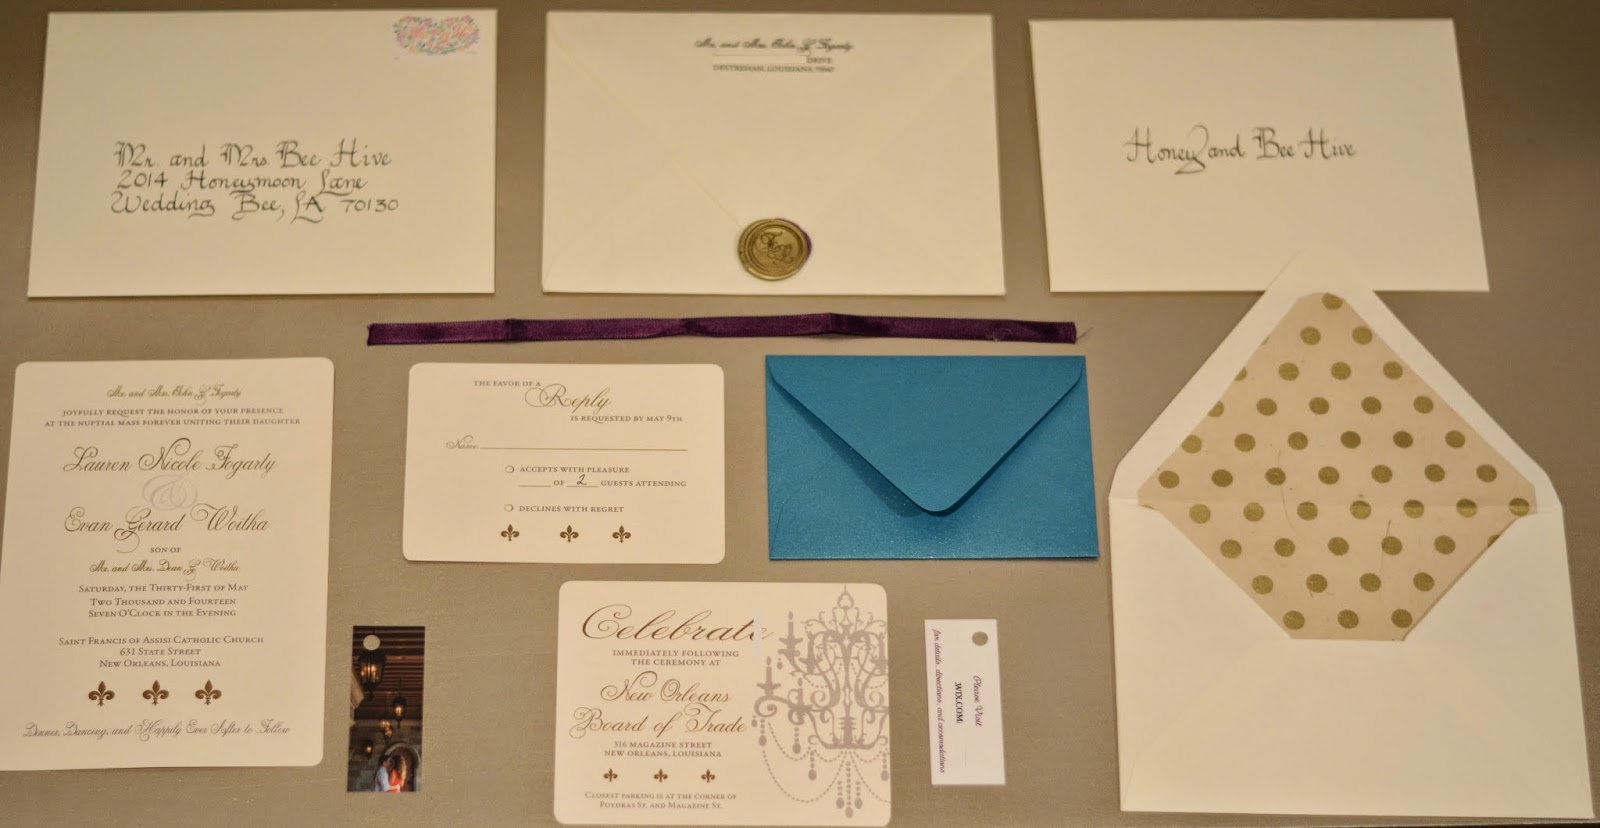 Parts Of Wedding Invitation: Fleur De Lips: Pyramid Invitations: Parts And Pieces